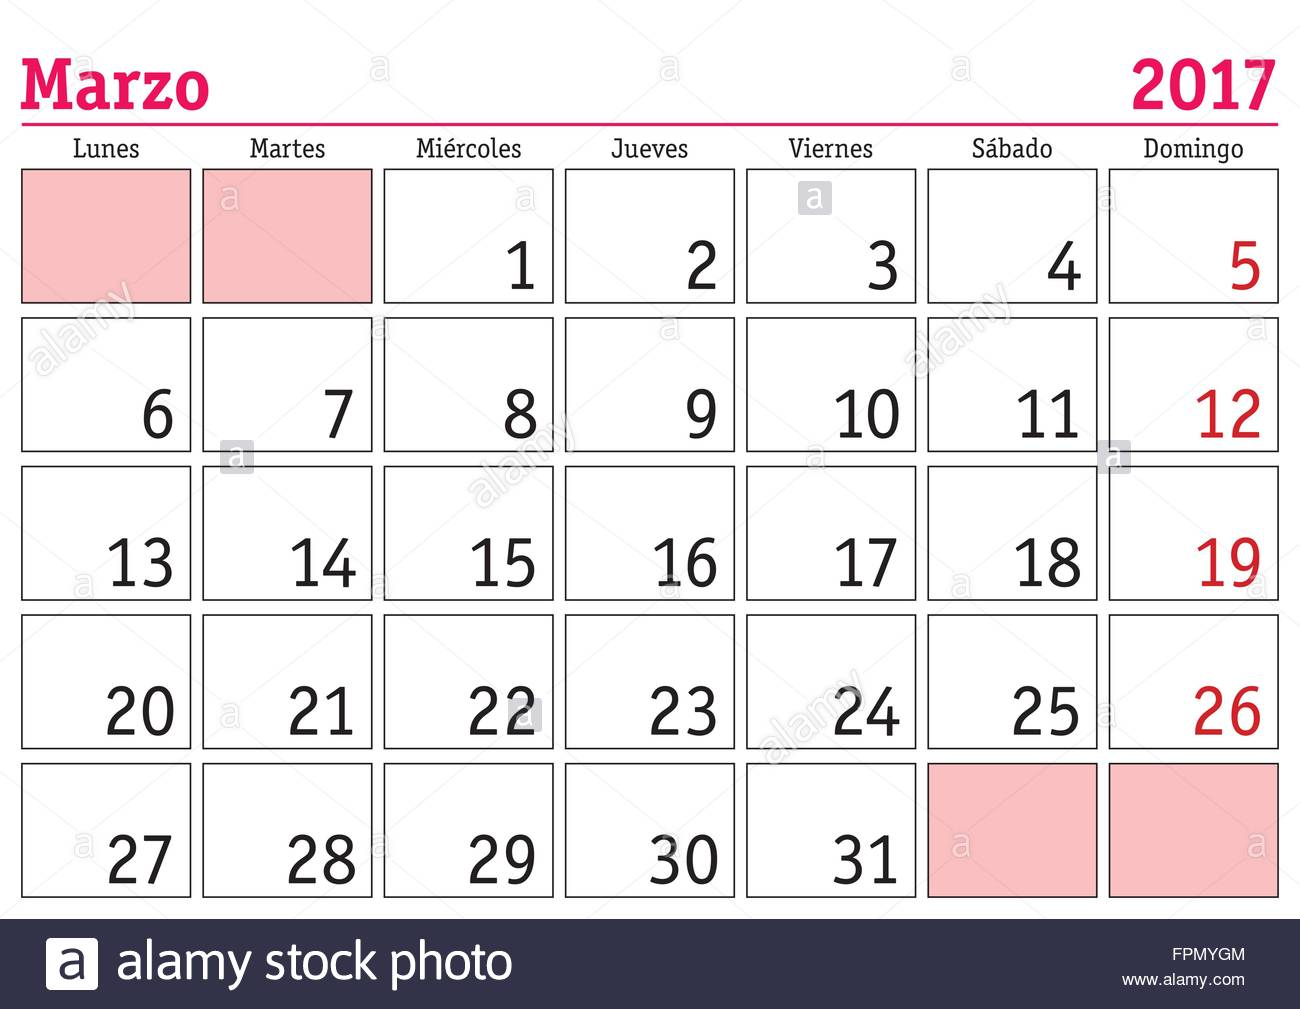 March Month In A Year 2017 Wall Calendar In Spanish Marzo